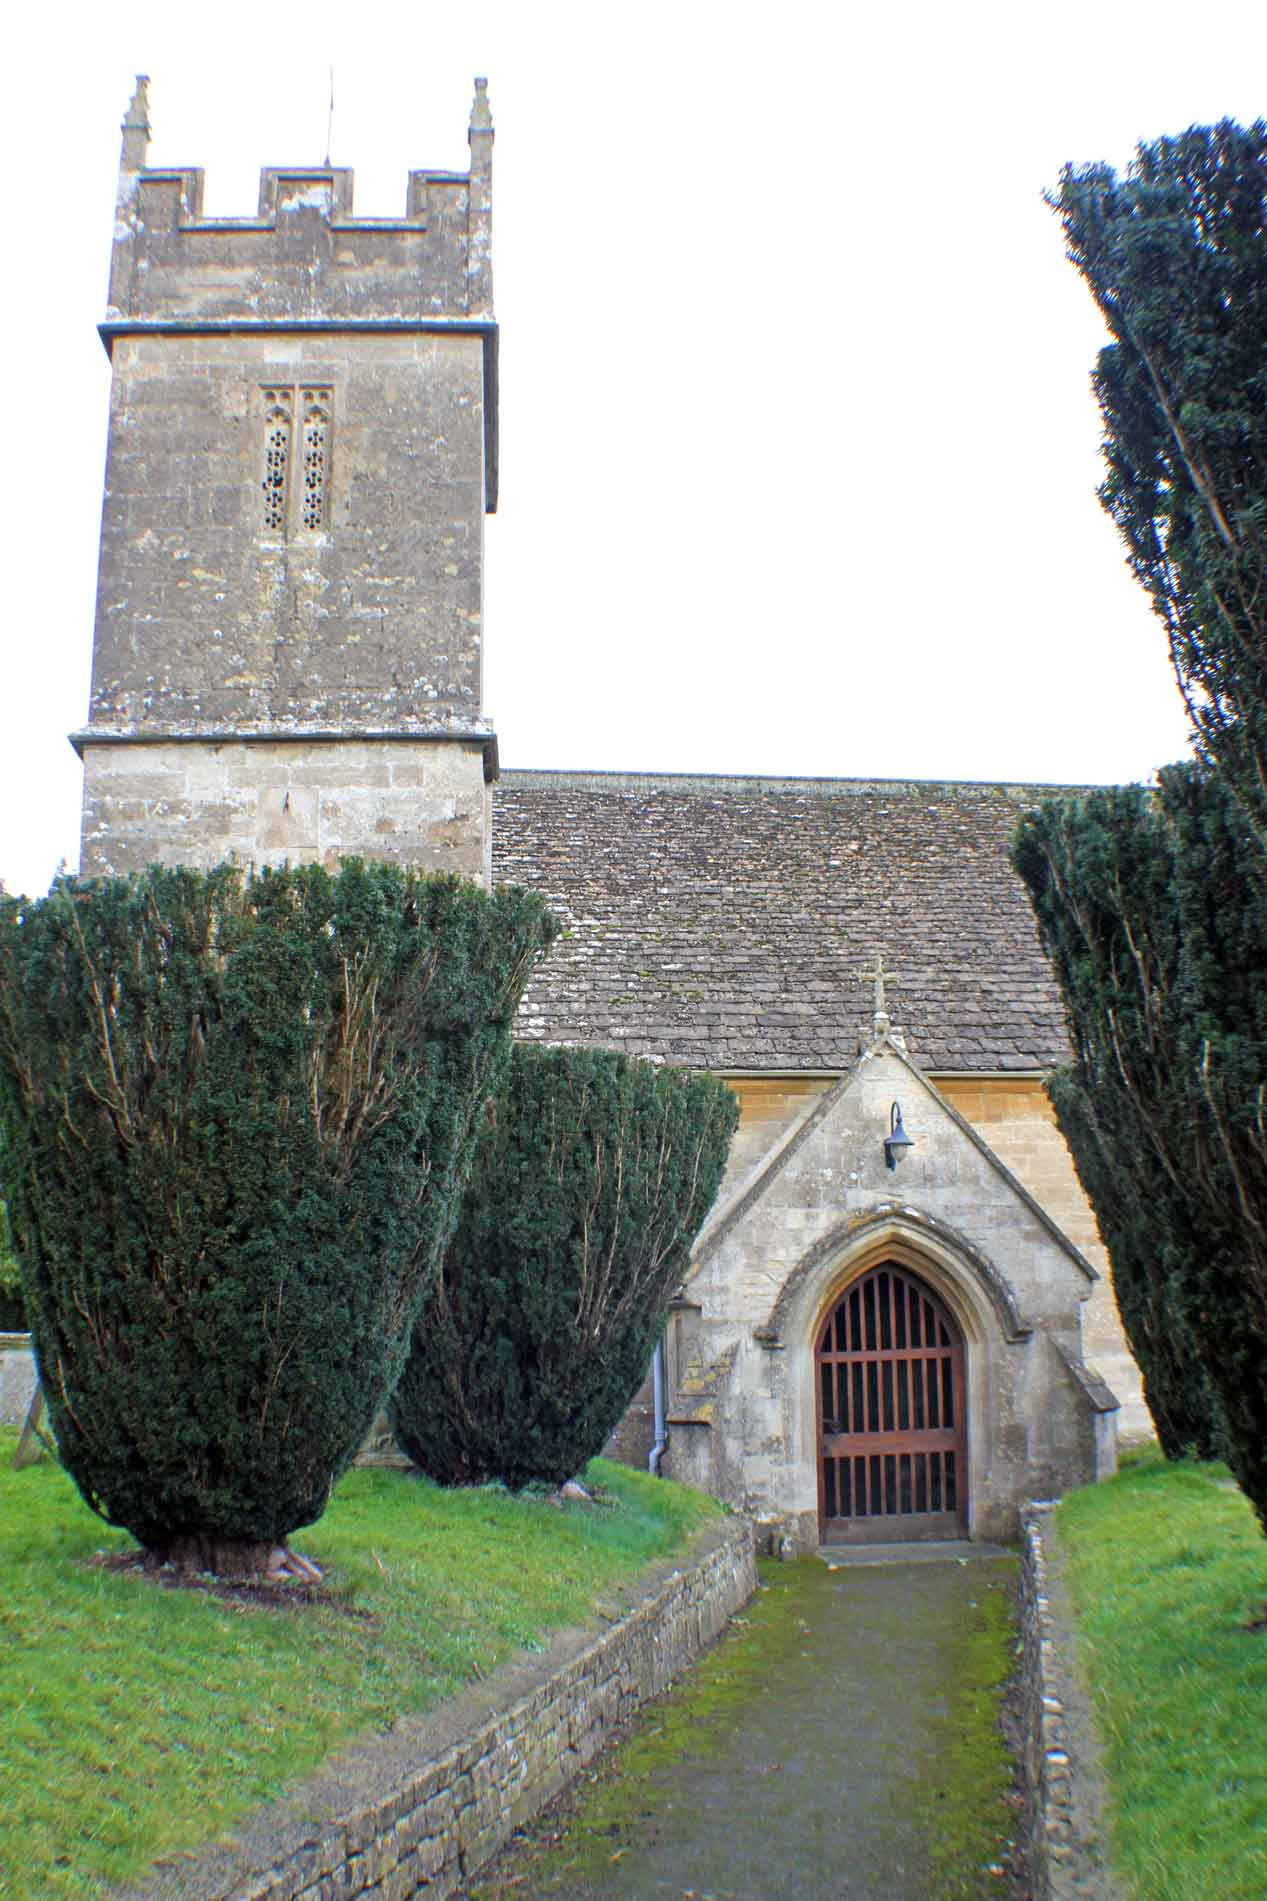 Sopworth Church, Tower and Porch